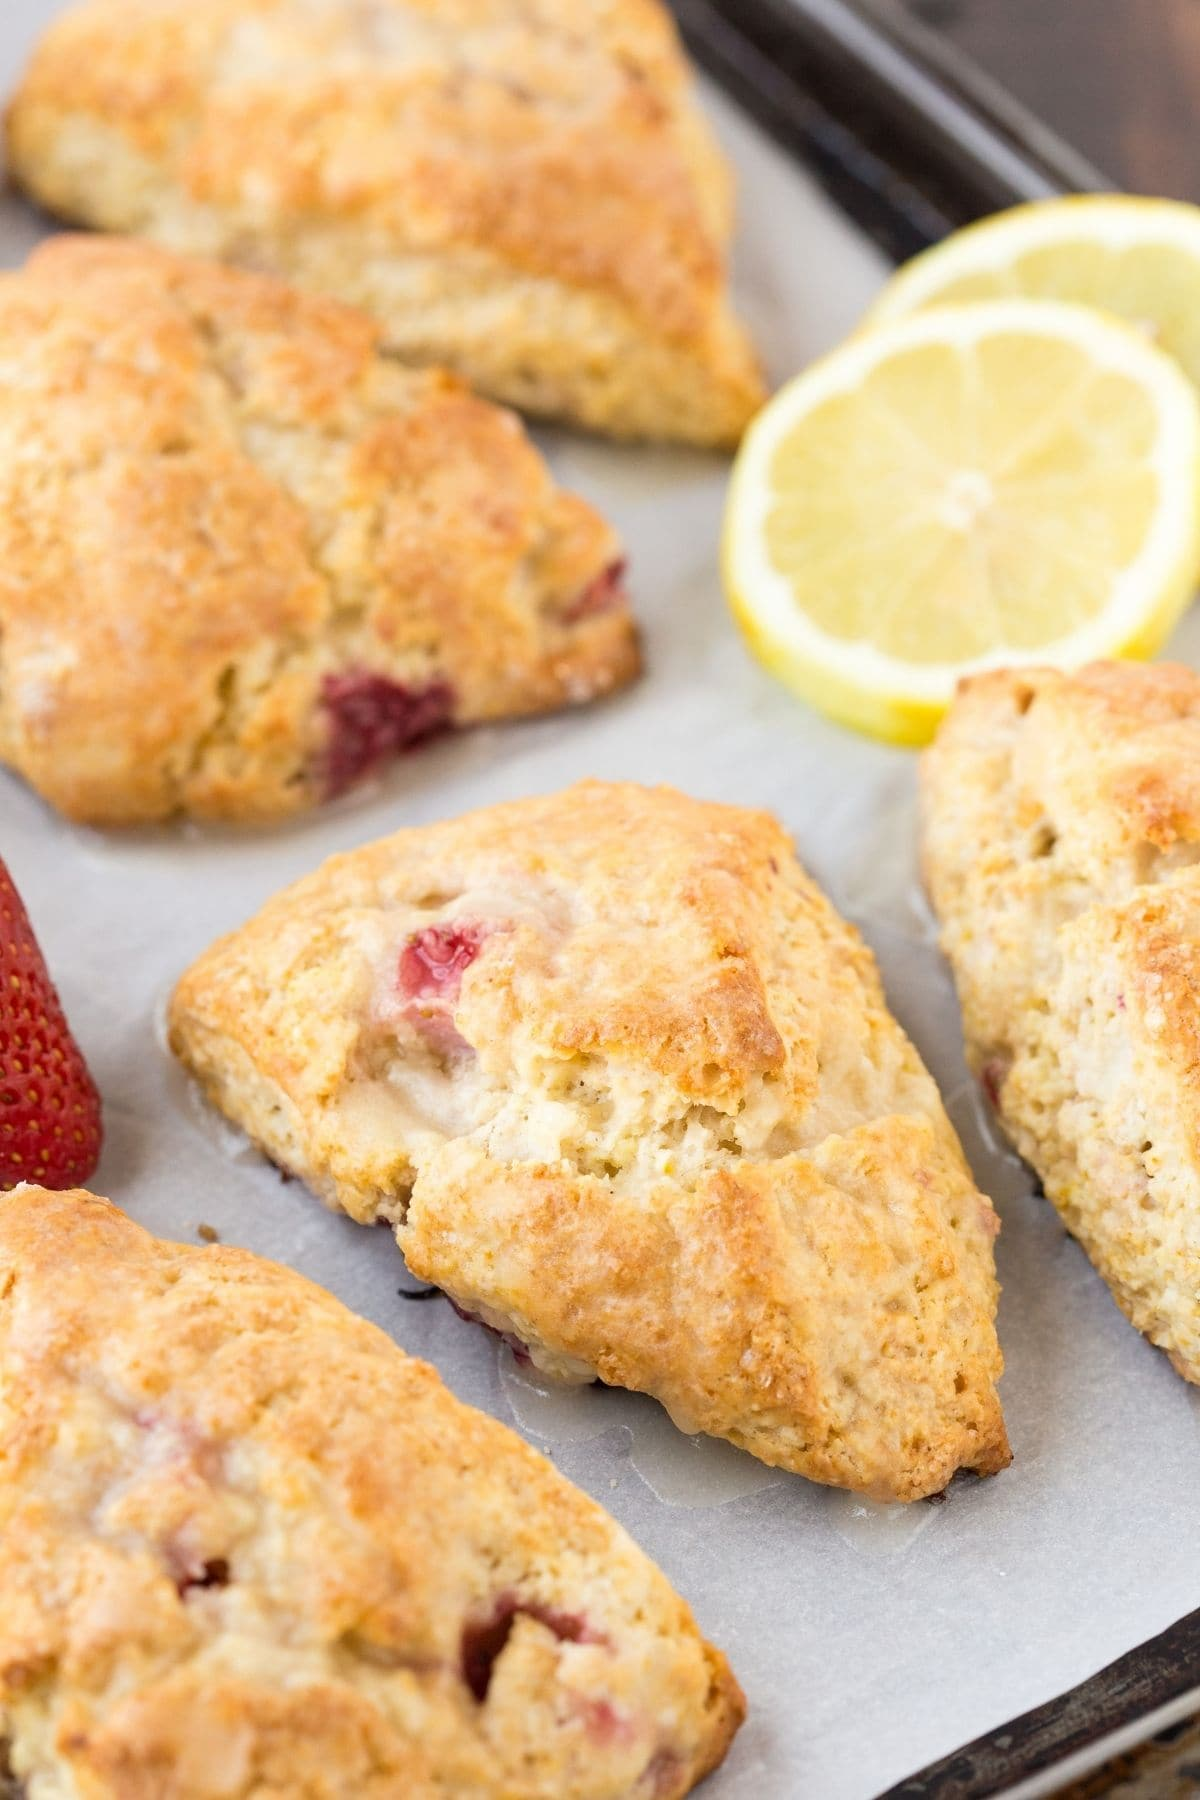 Lemon Cream Cheese Scones on a baking sheet lined with white parchment paper.